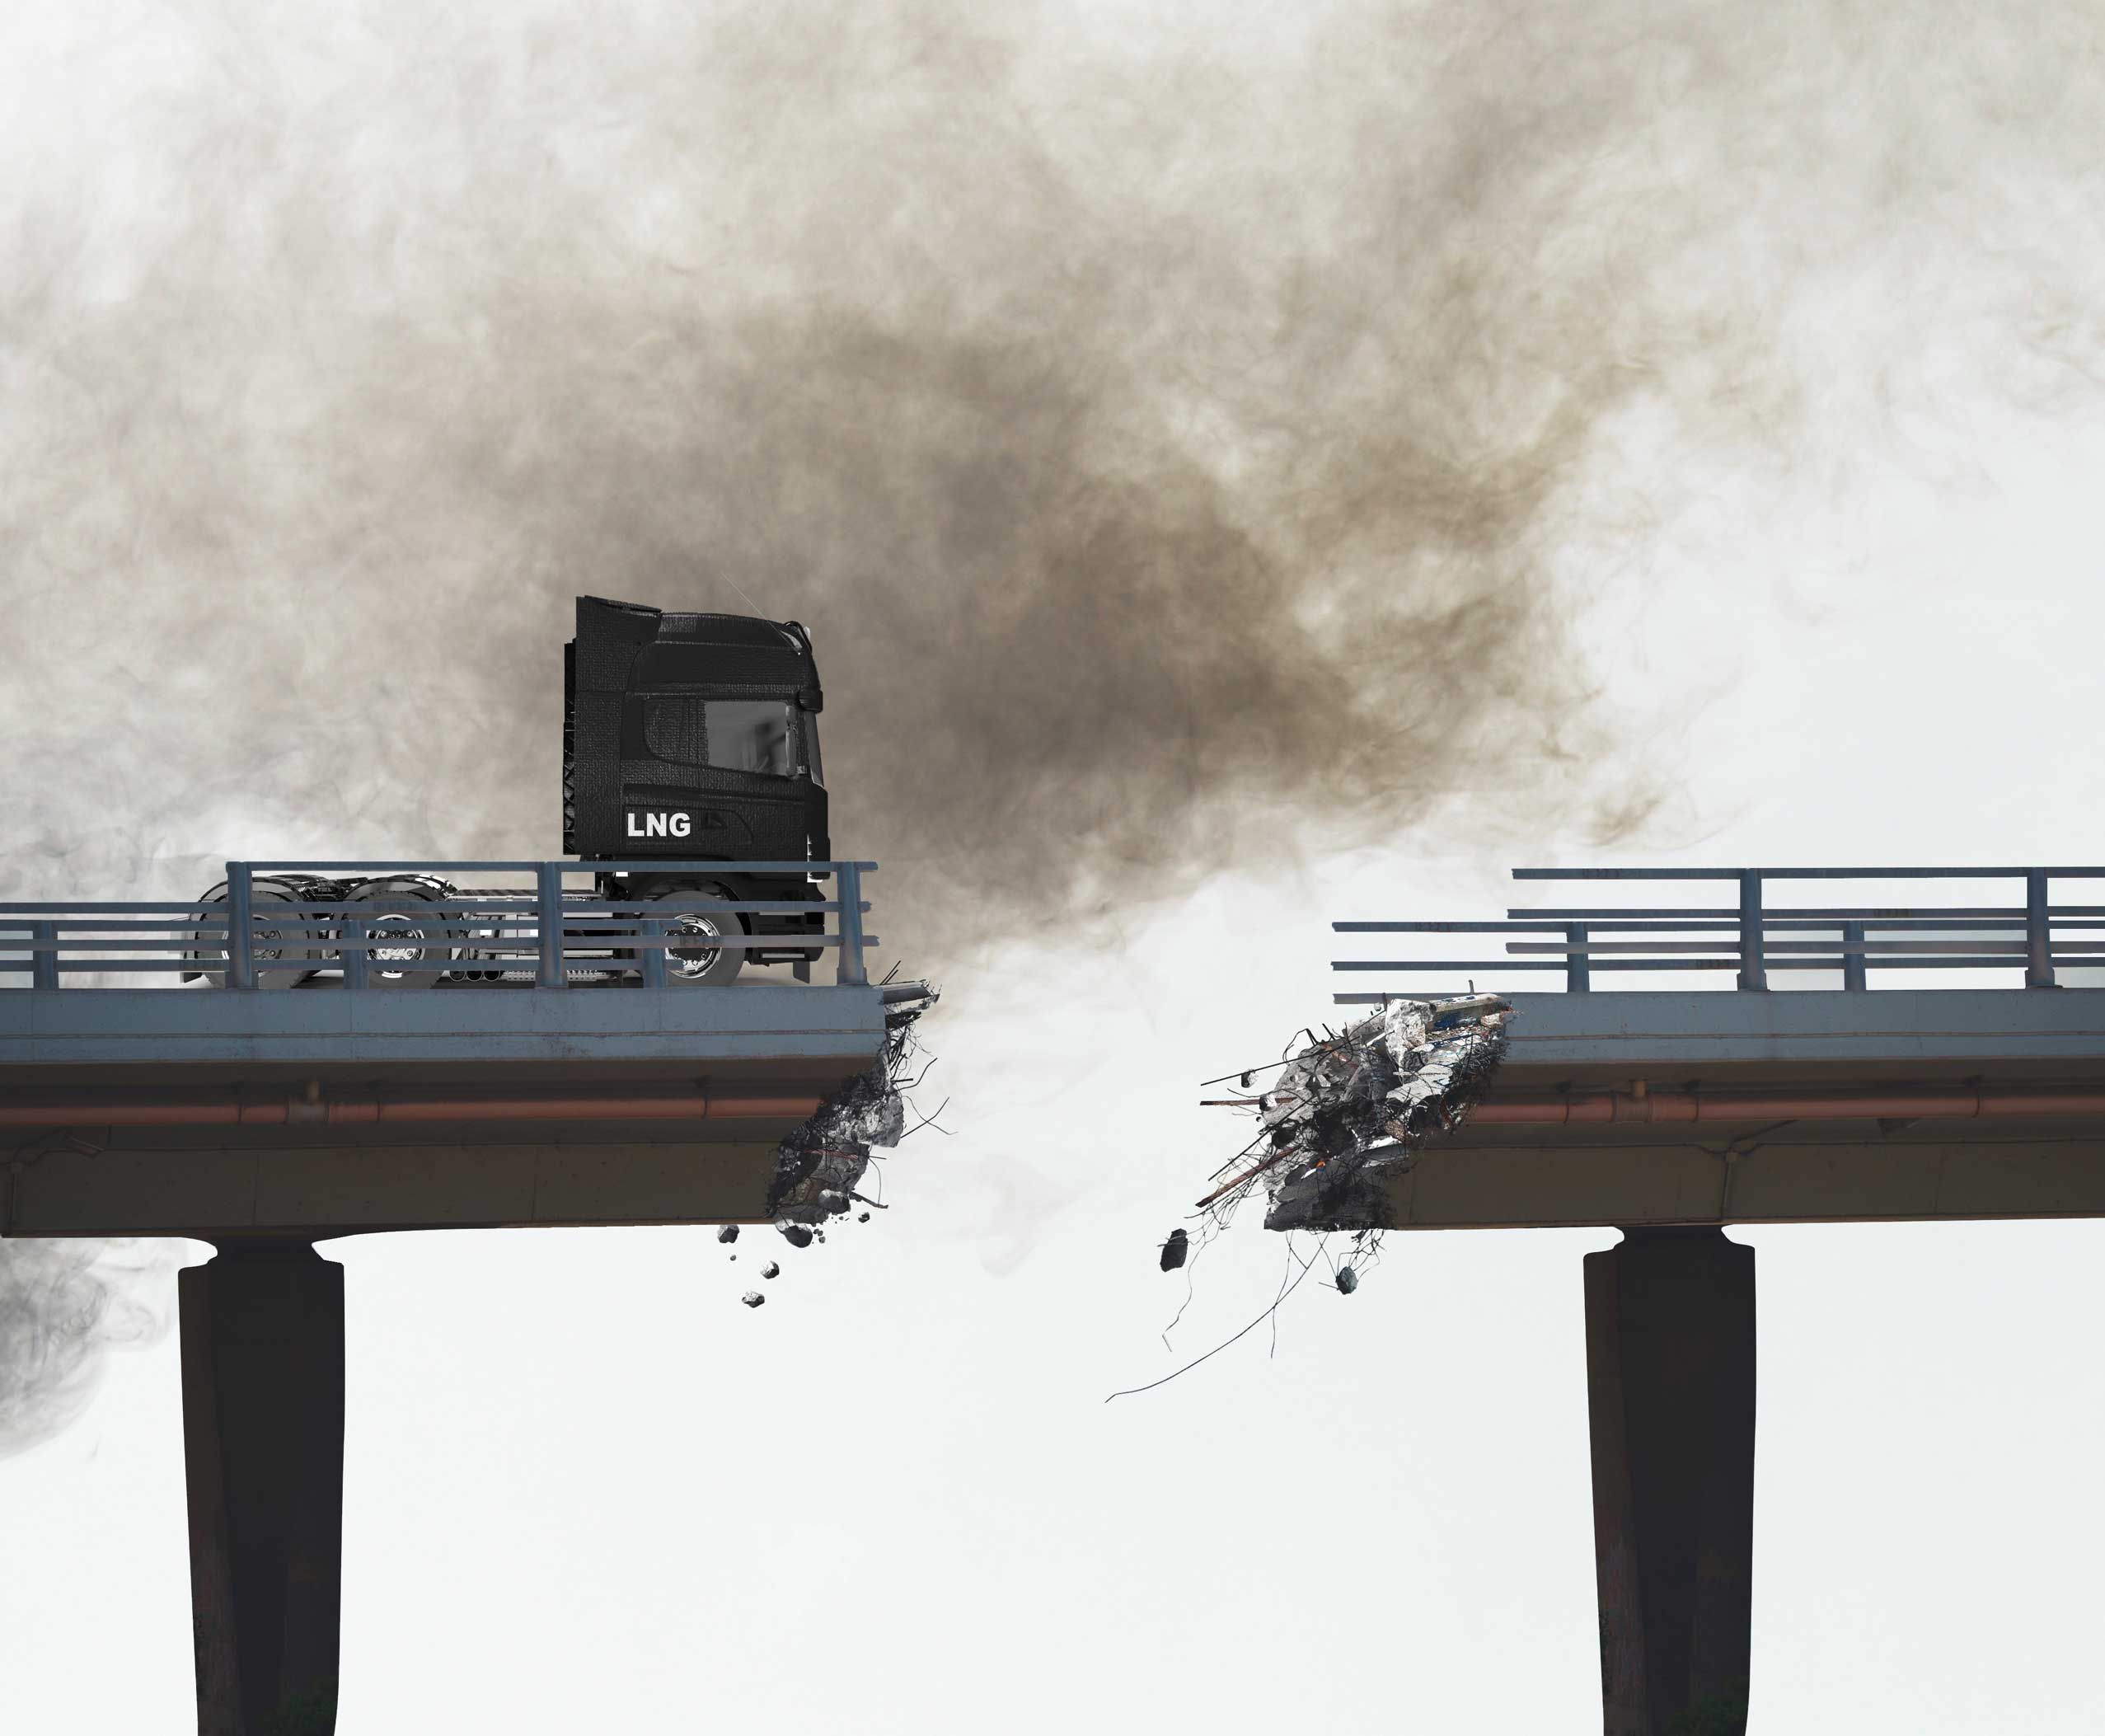 LNG trucks are not a viable solution to reduce emissions